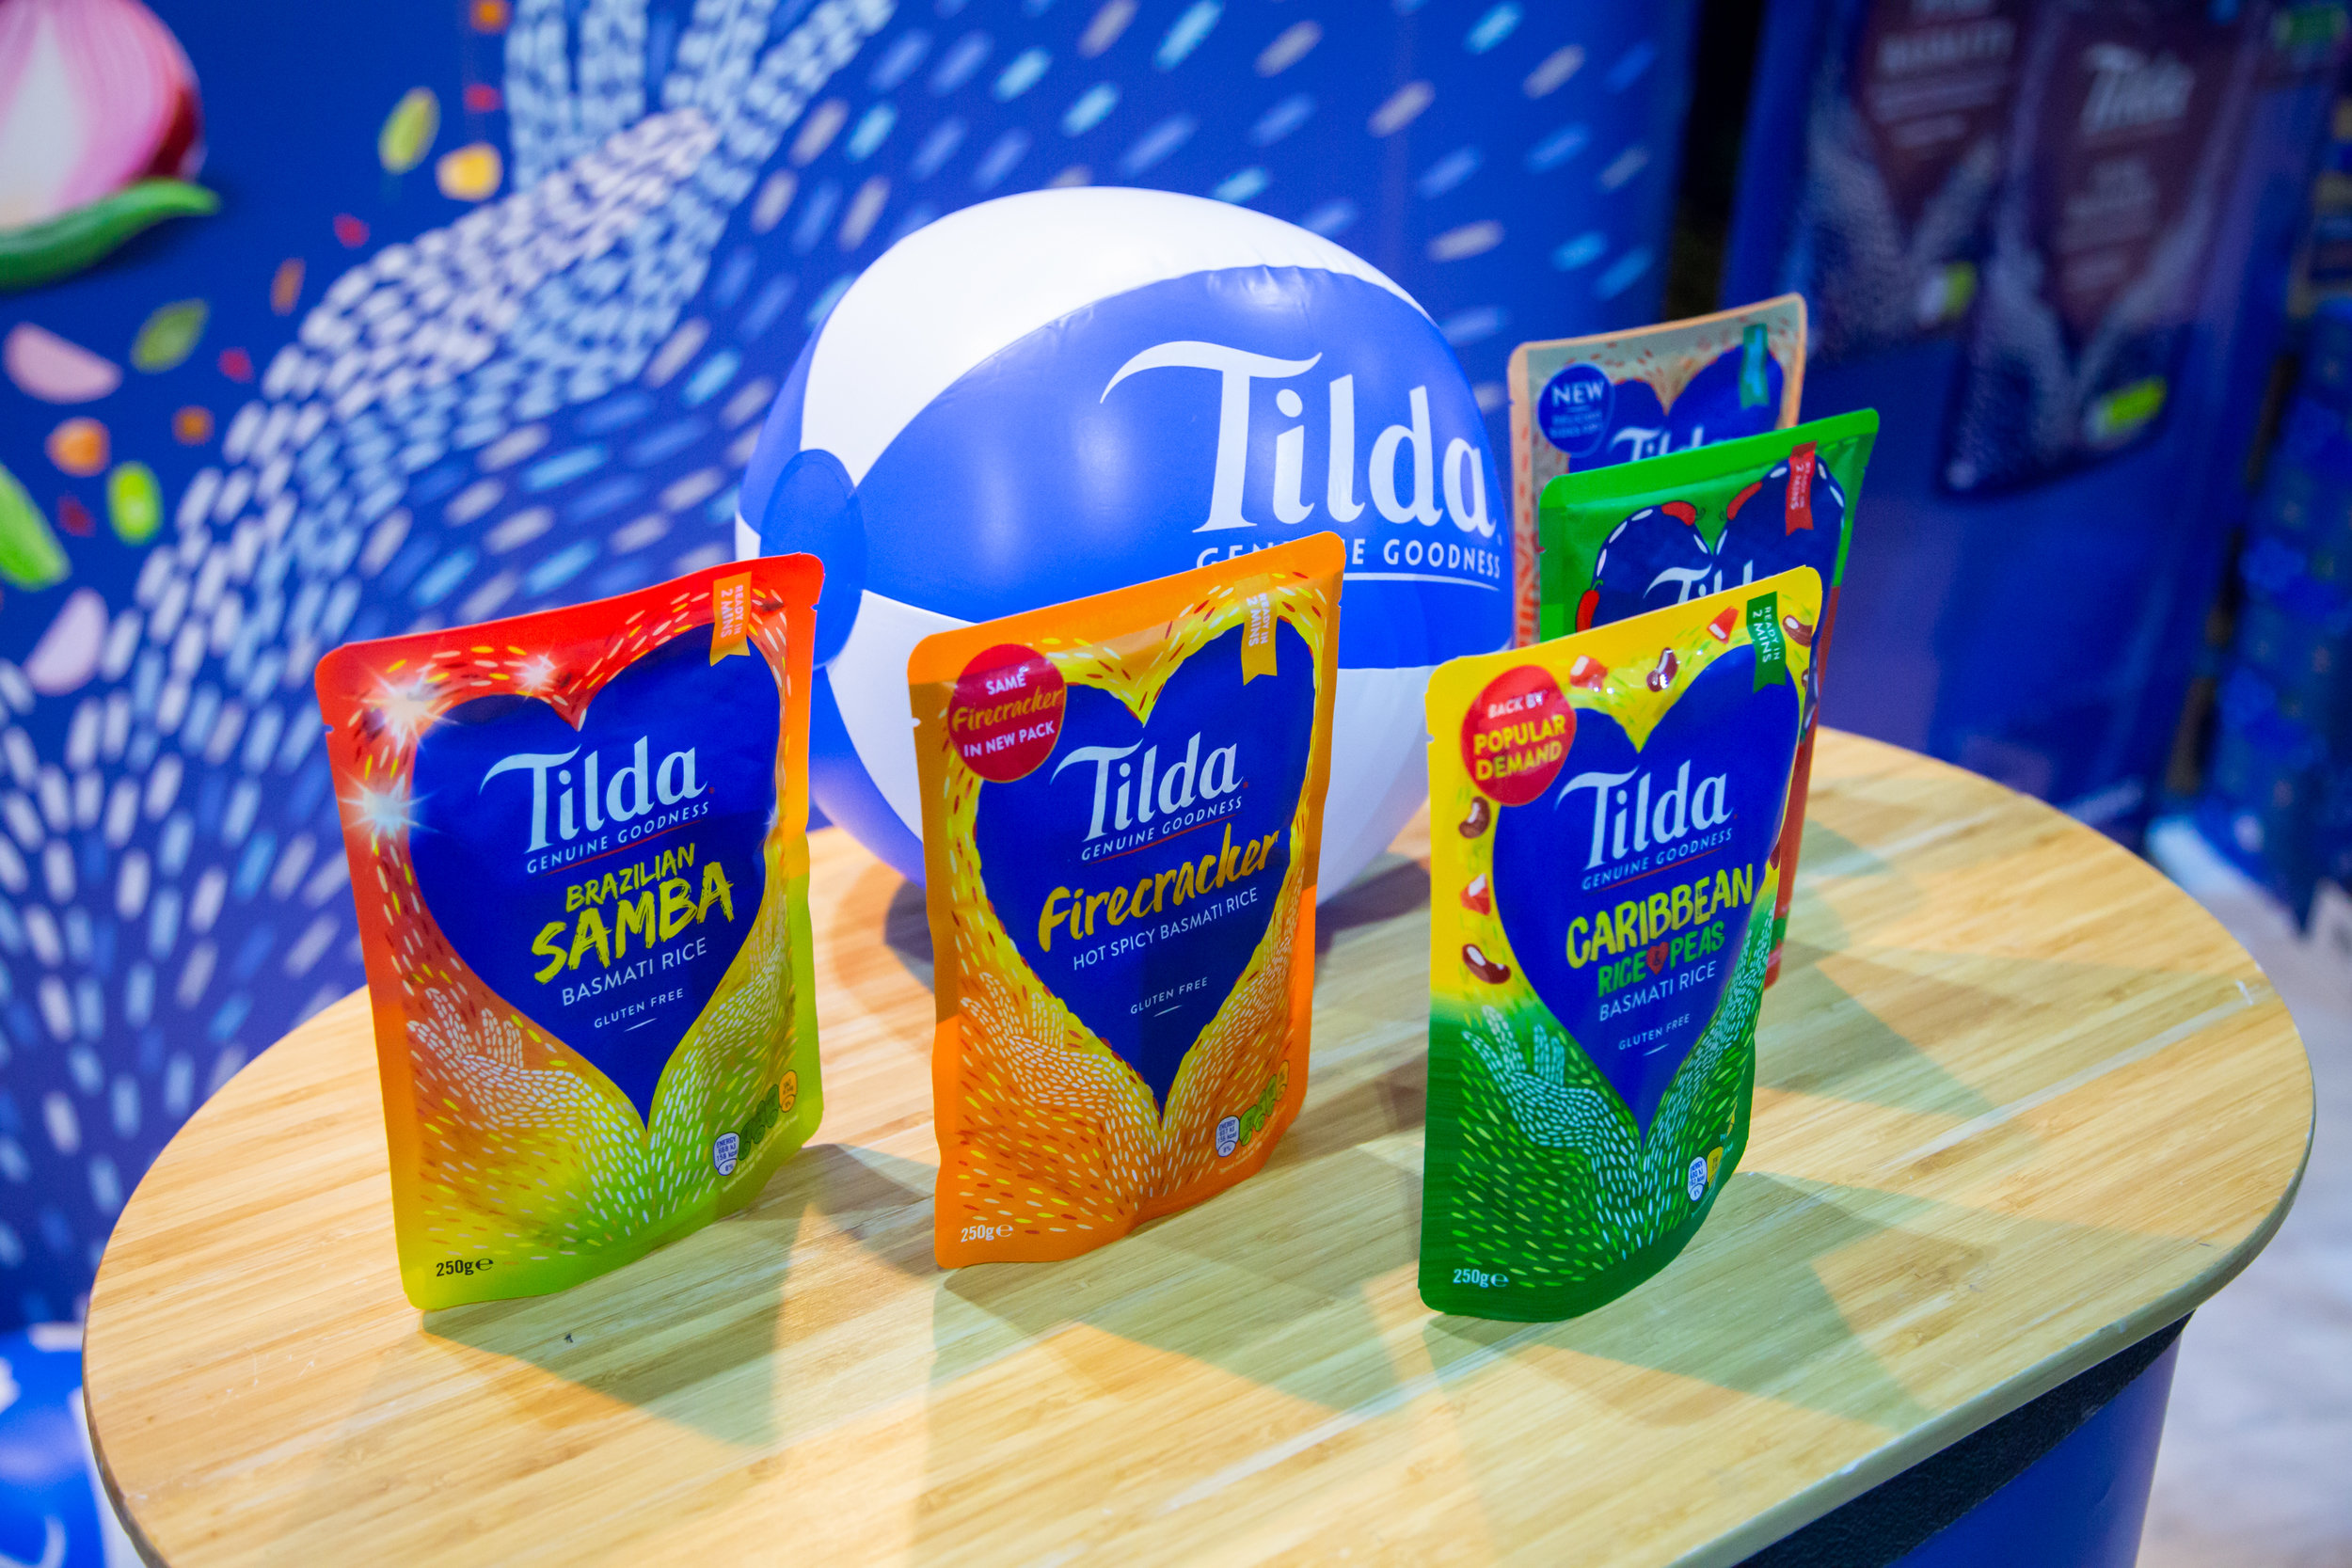 TILDA - Whether you're building up a biryani or smashing out a stir fry Tilda are here to keep people inspired, trying new things, and enjoying life enriched by the cultures and flavours of the world.Tilda are great supporters of all the world's wonderful flavours that we find on every corner in Britain and around the world. From Jamaican to Pakistani, West African to Cantonese food. Bradford to Brick Lane and back again.For over 45 years Tilda have been the go-to choice of rice aficionados, from great grandmothers, to great chefs. We're proud to sit at the heart of so many dinner tables. Whether you consider yourself a foodie or not, Tilda only provide the best grains that make your meal taste wonderful and flavourful!